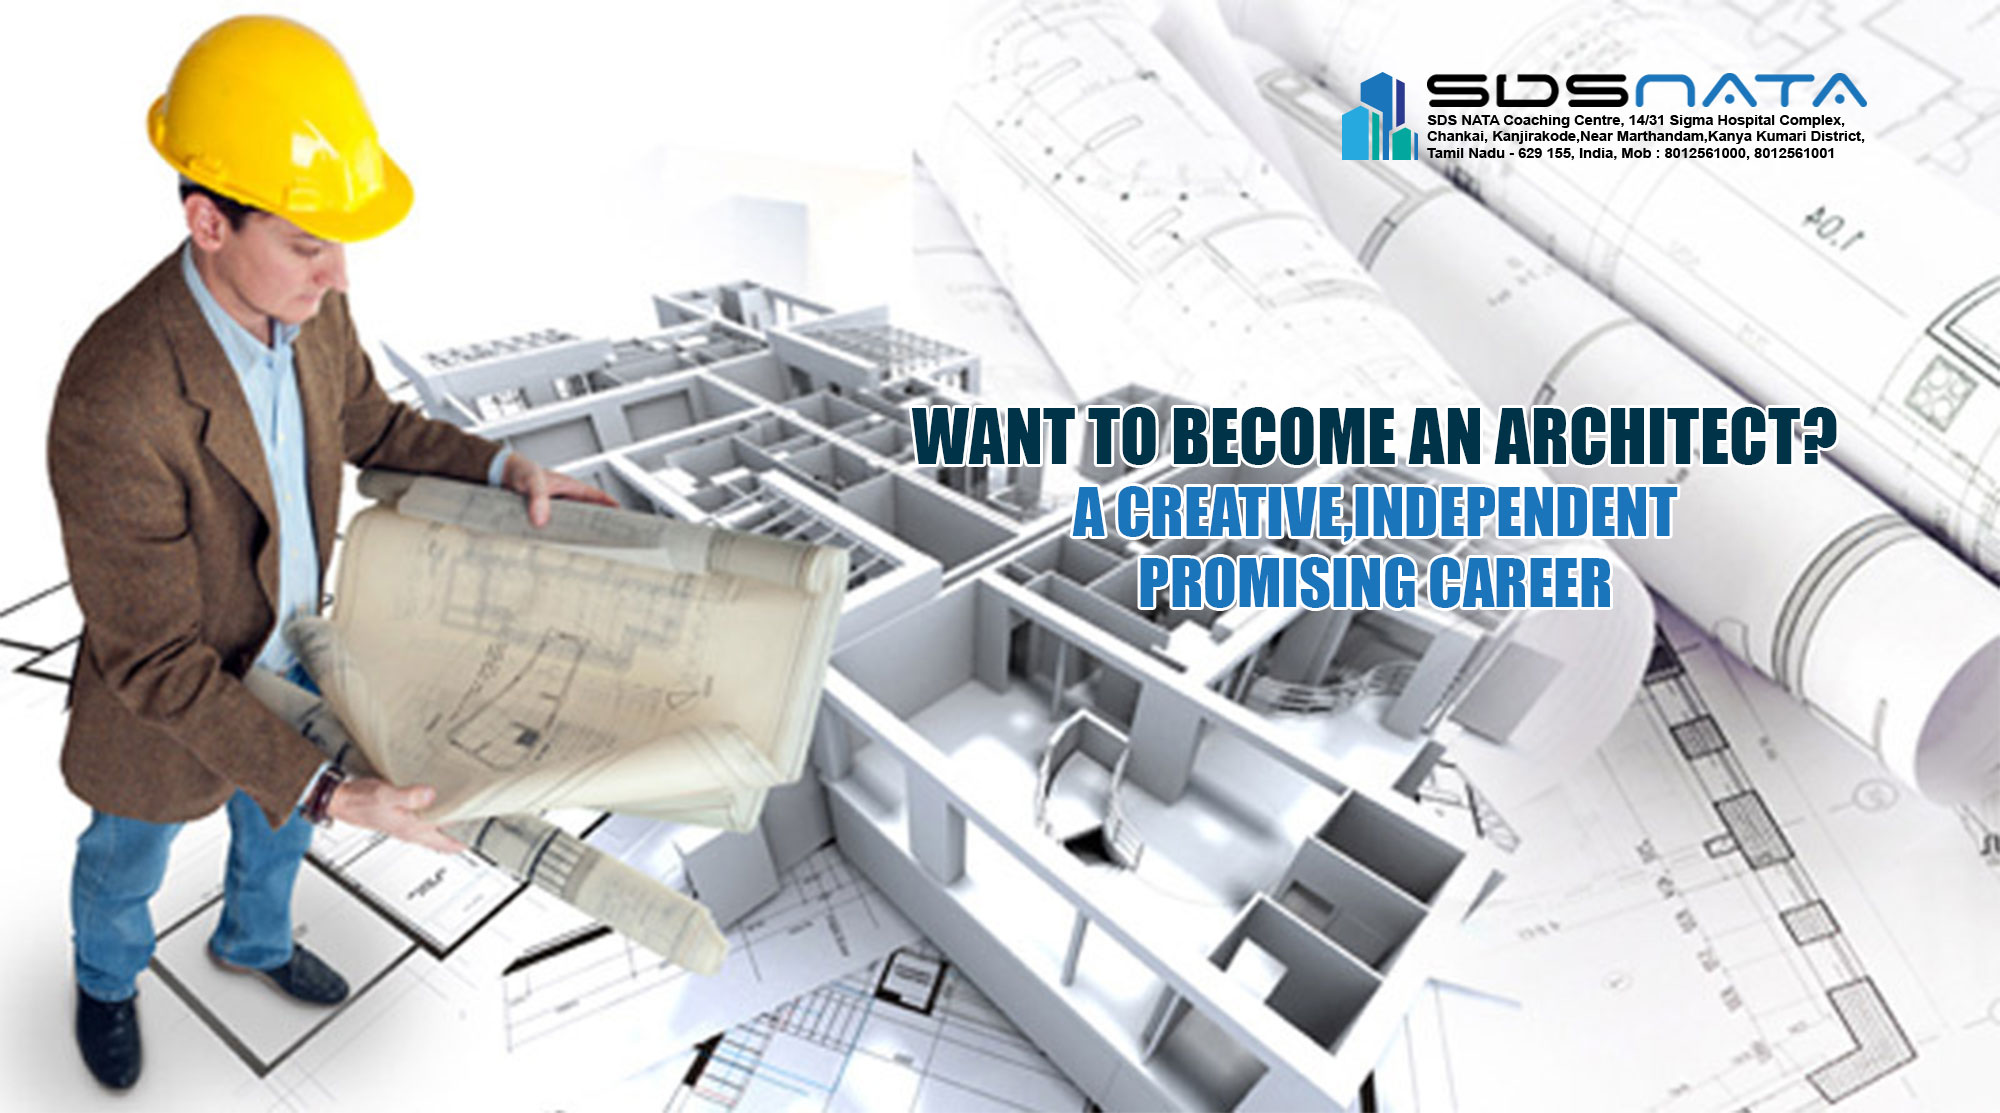 Want to become an Architect?